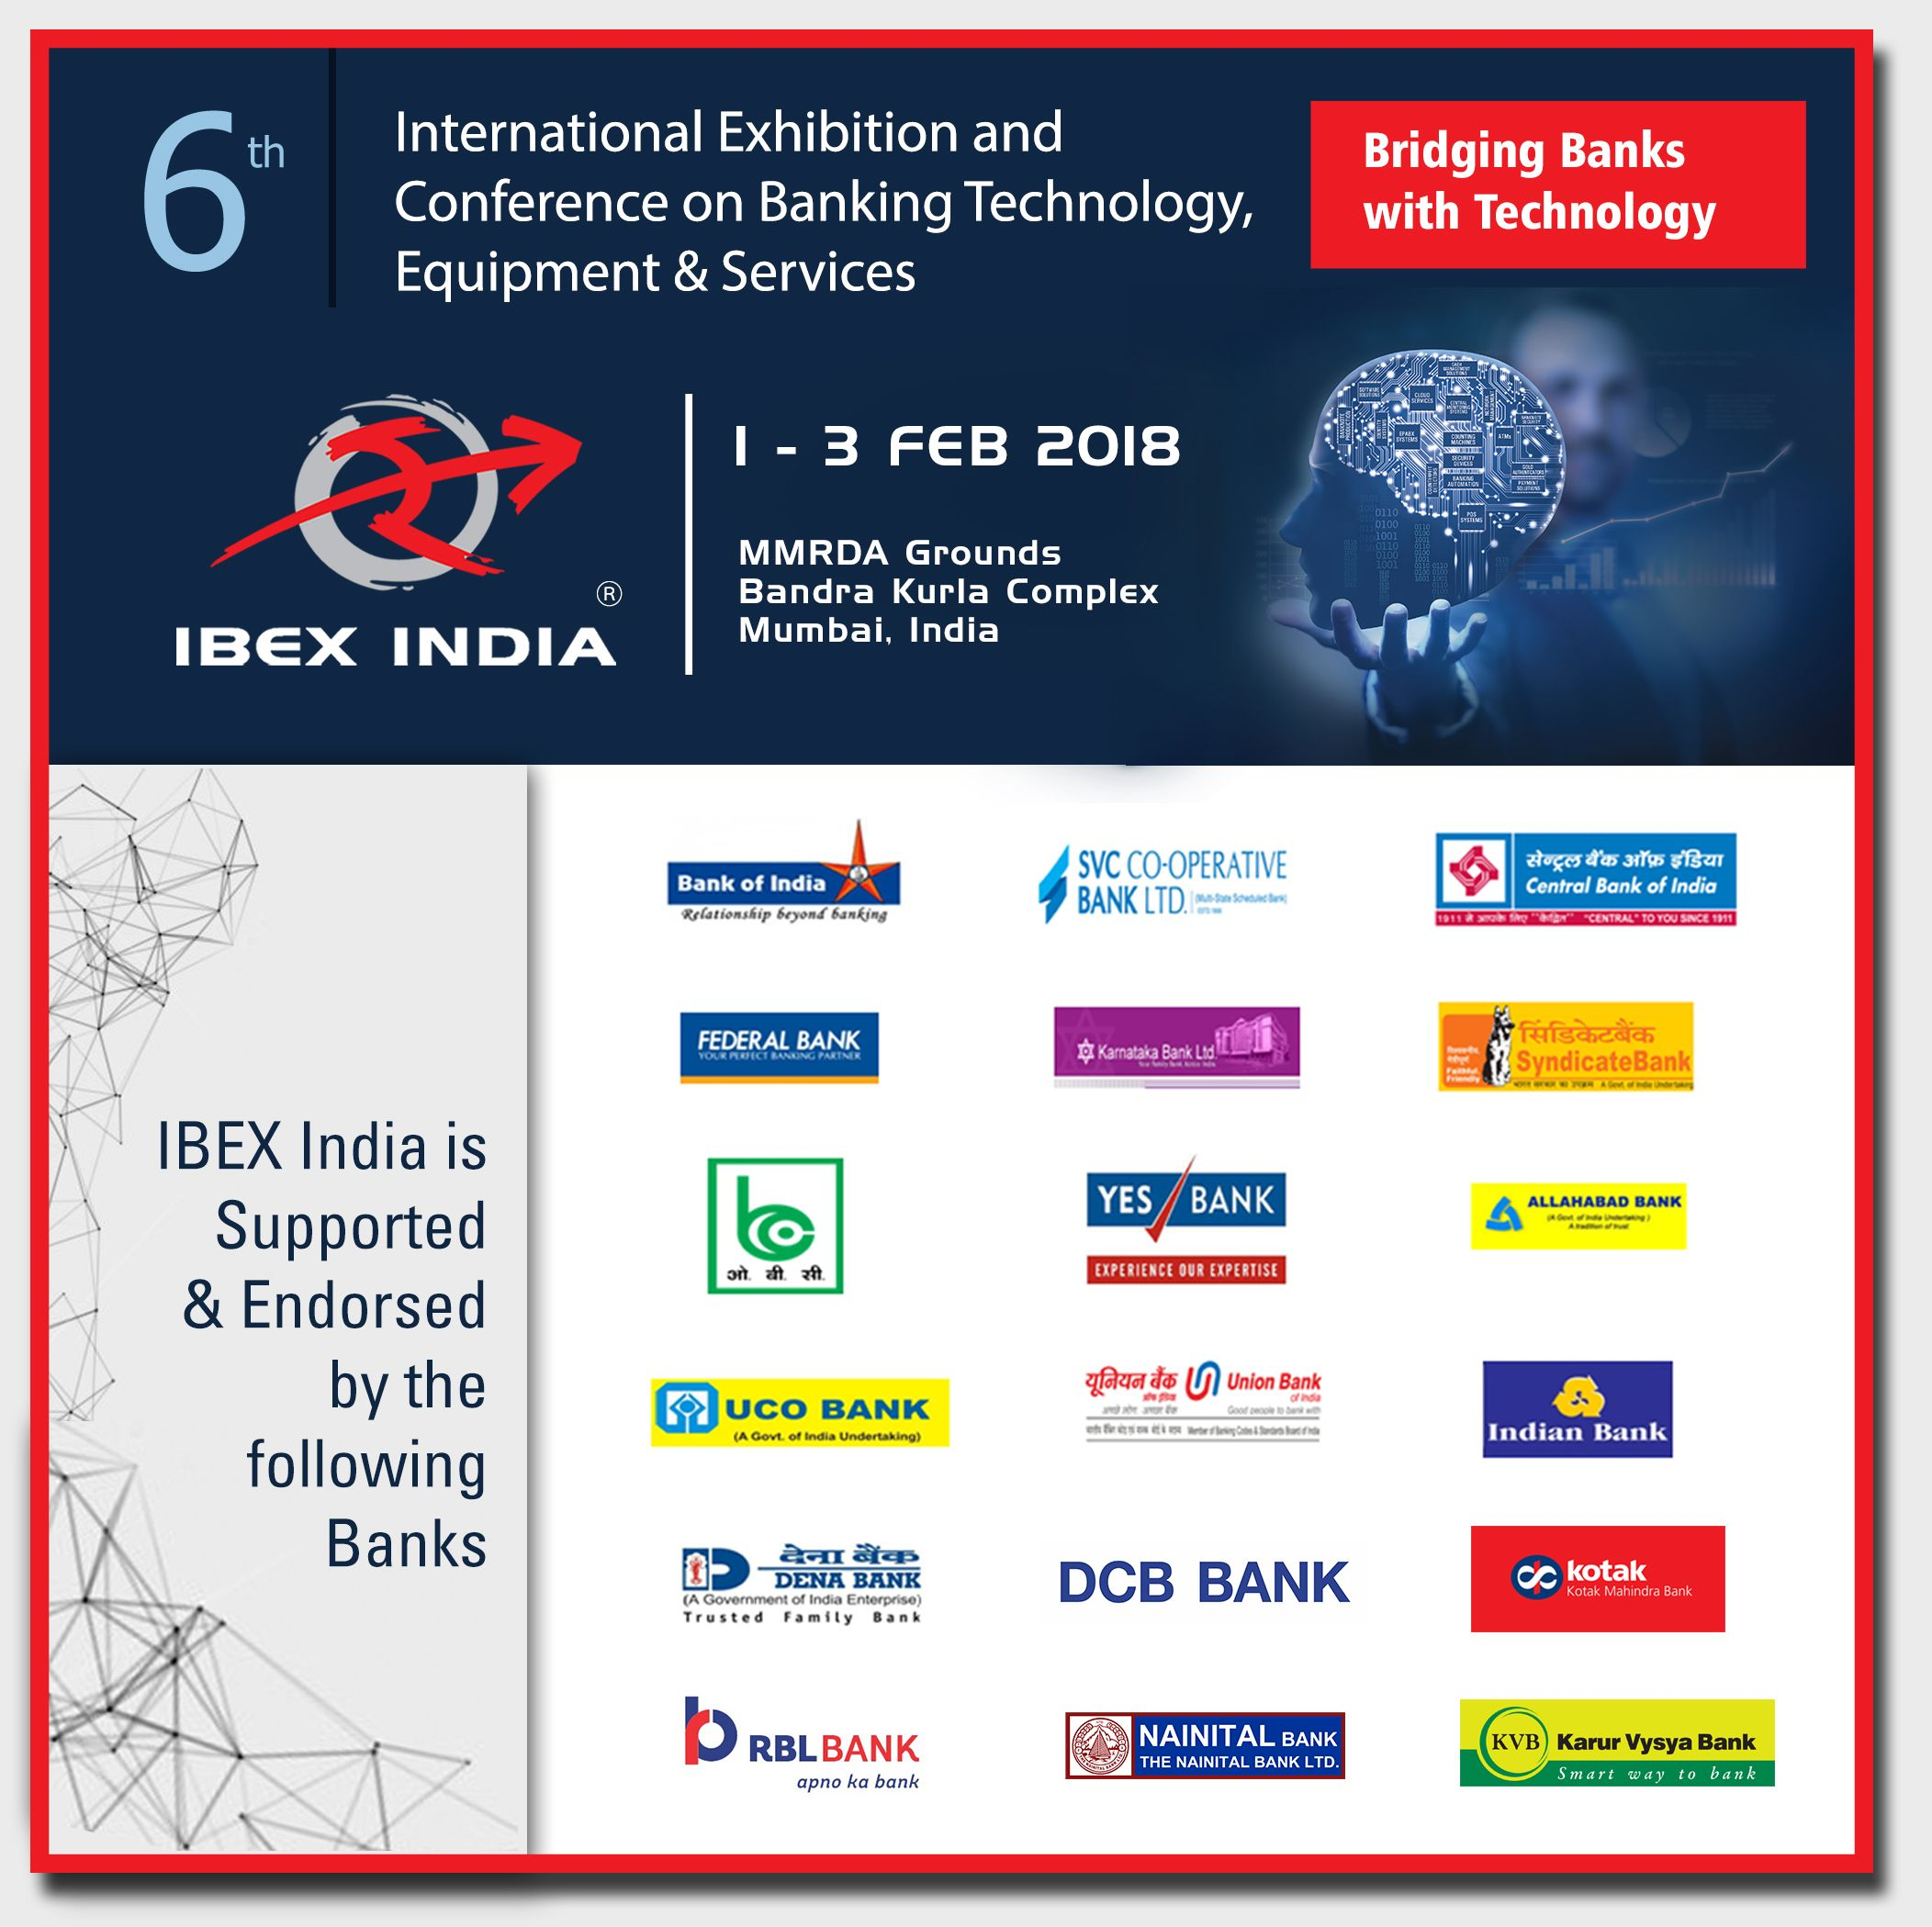 IBEX India is Supported & Endorsed by the following Banks